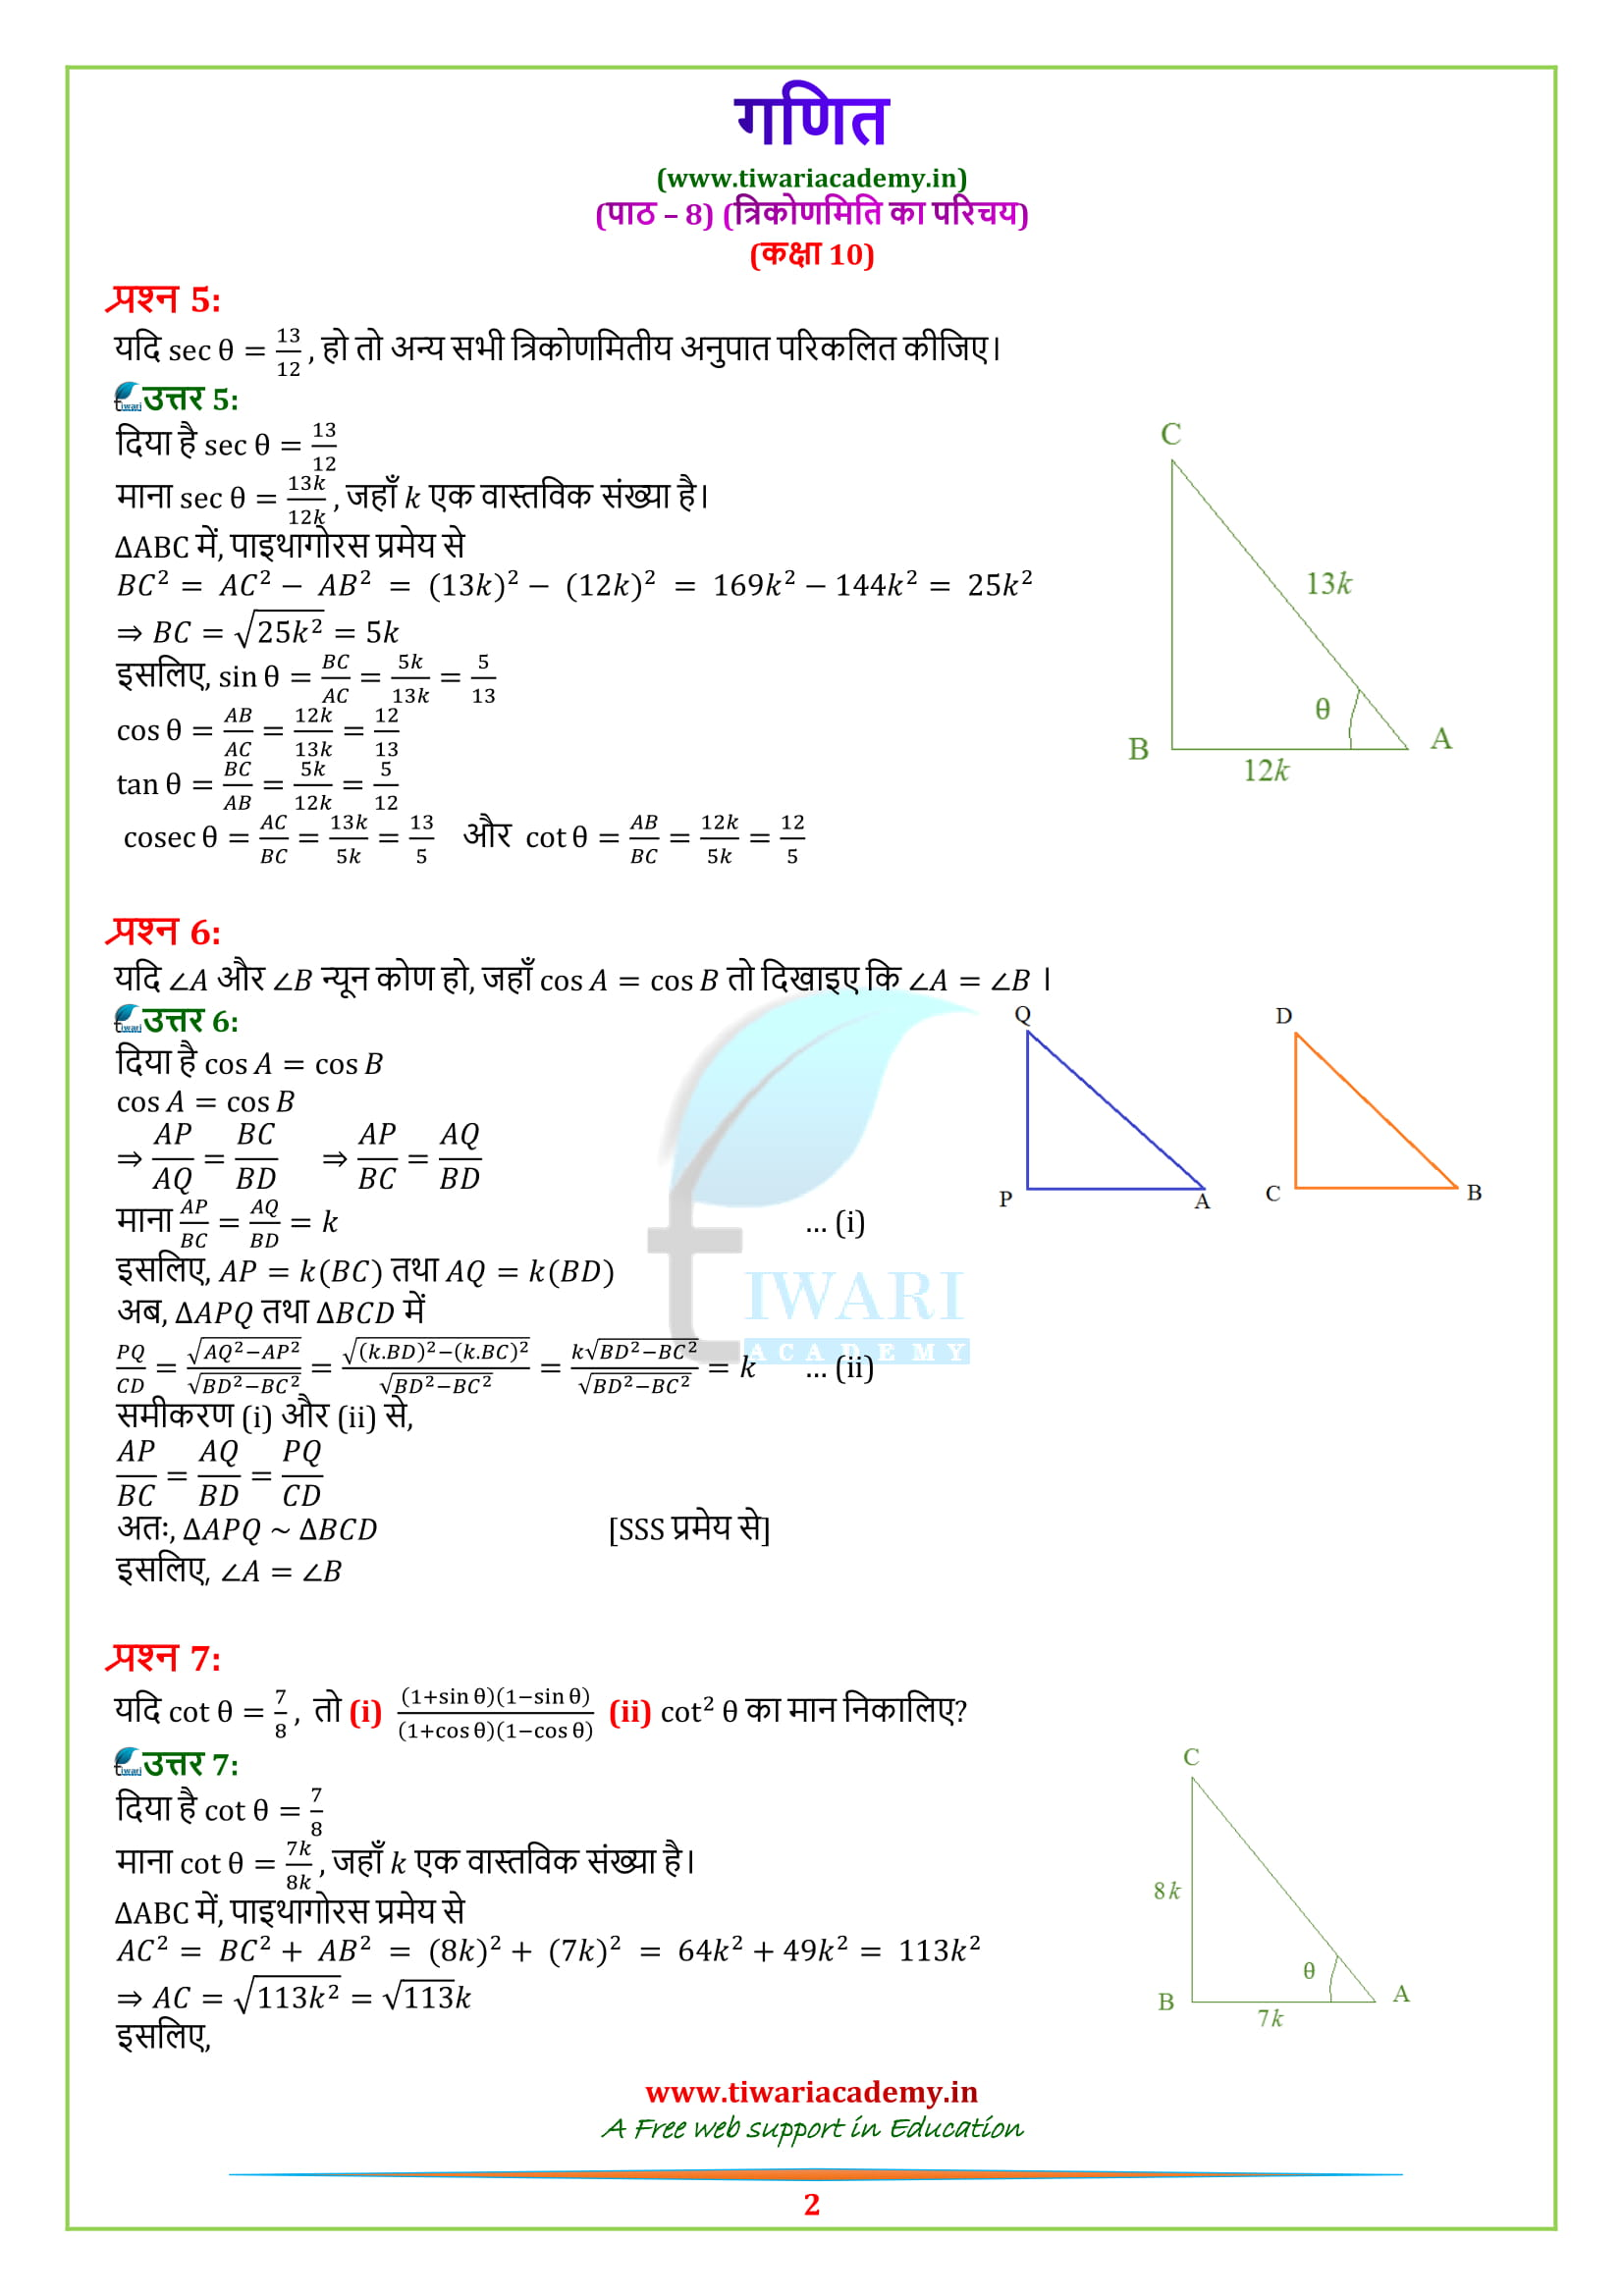 Class 10 Maths Exercise 8.1 Solutions download in pdf